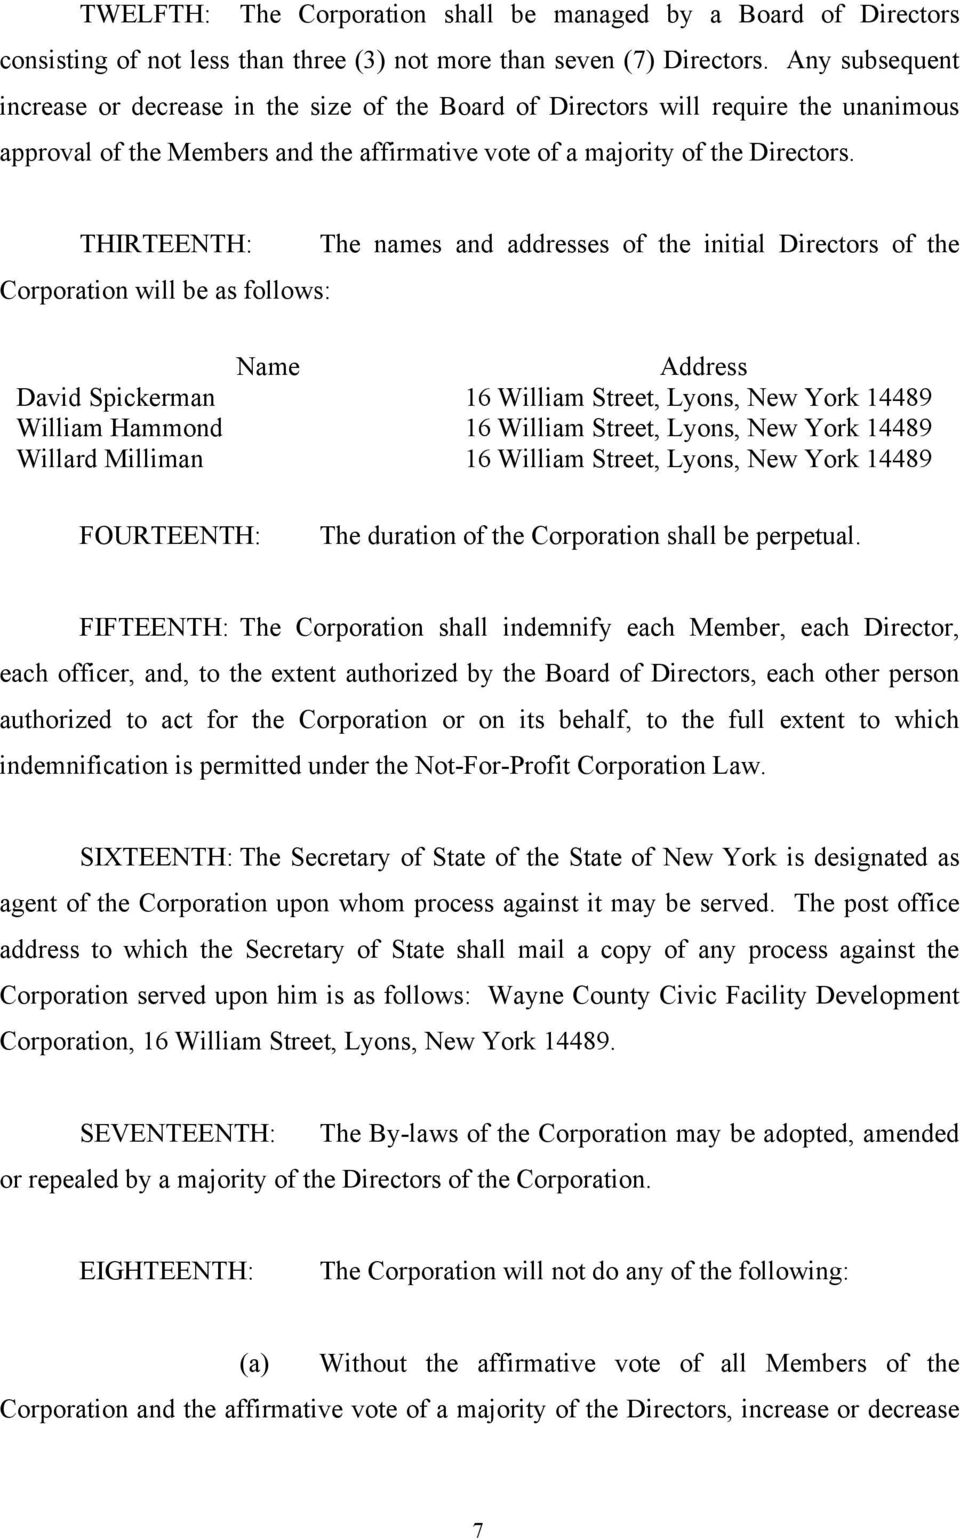 THIRTEENTH: The names and addresses of the initial Directors of the Corporation will be as follows: Name Address David Spickerman 16 William Street, Lyons, New York 14489 William Hammond 16 William